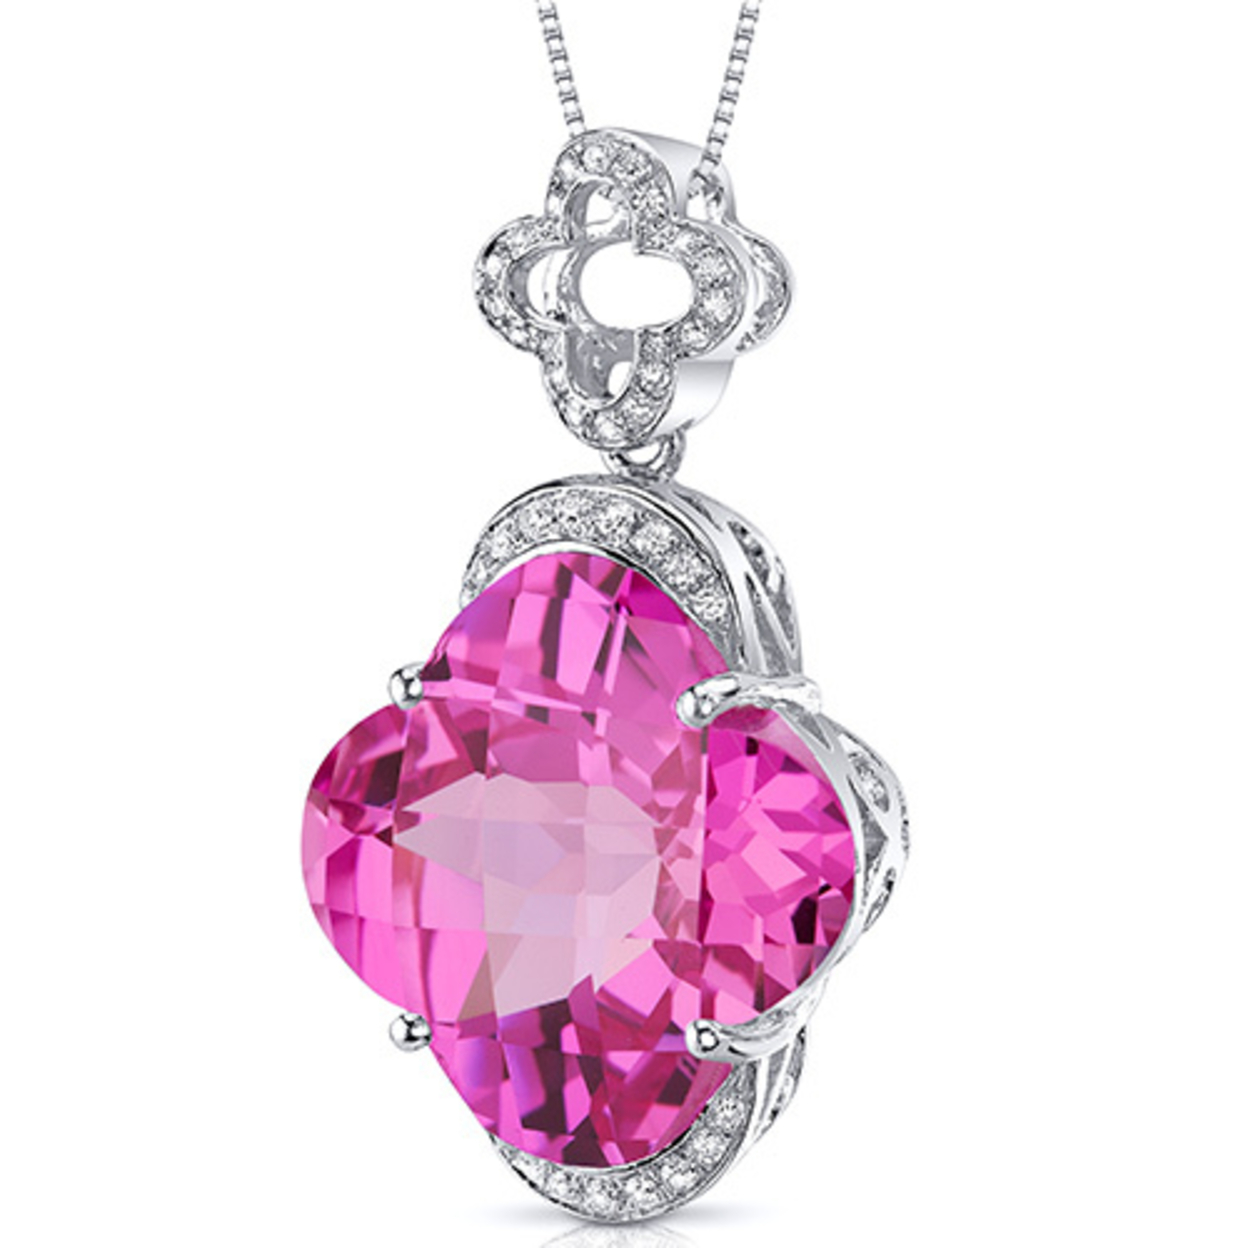 Oravo 22.00 Carat T.g.w. Lilly Cut Created Pink Sapphire Rhodium Over Sterling Silver Pendant, 18""